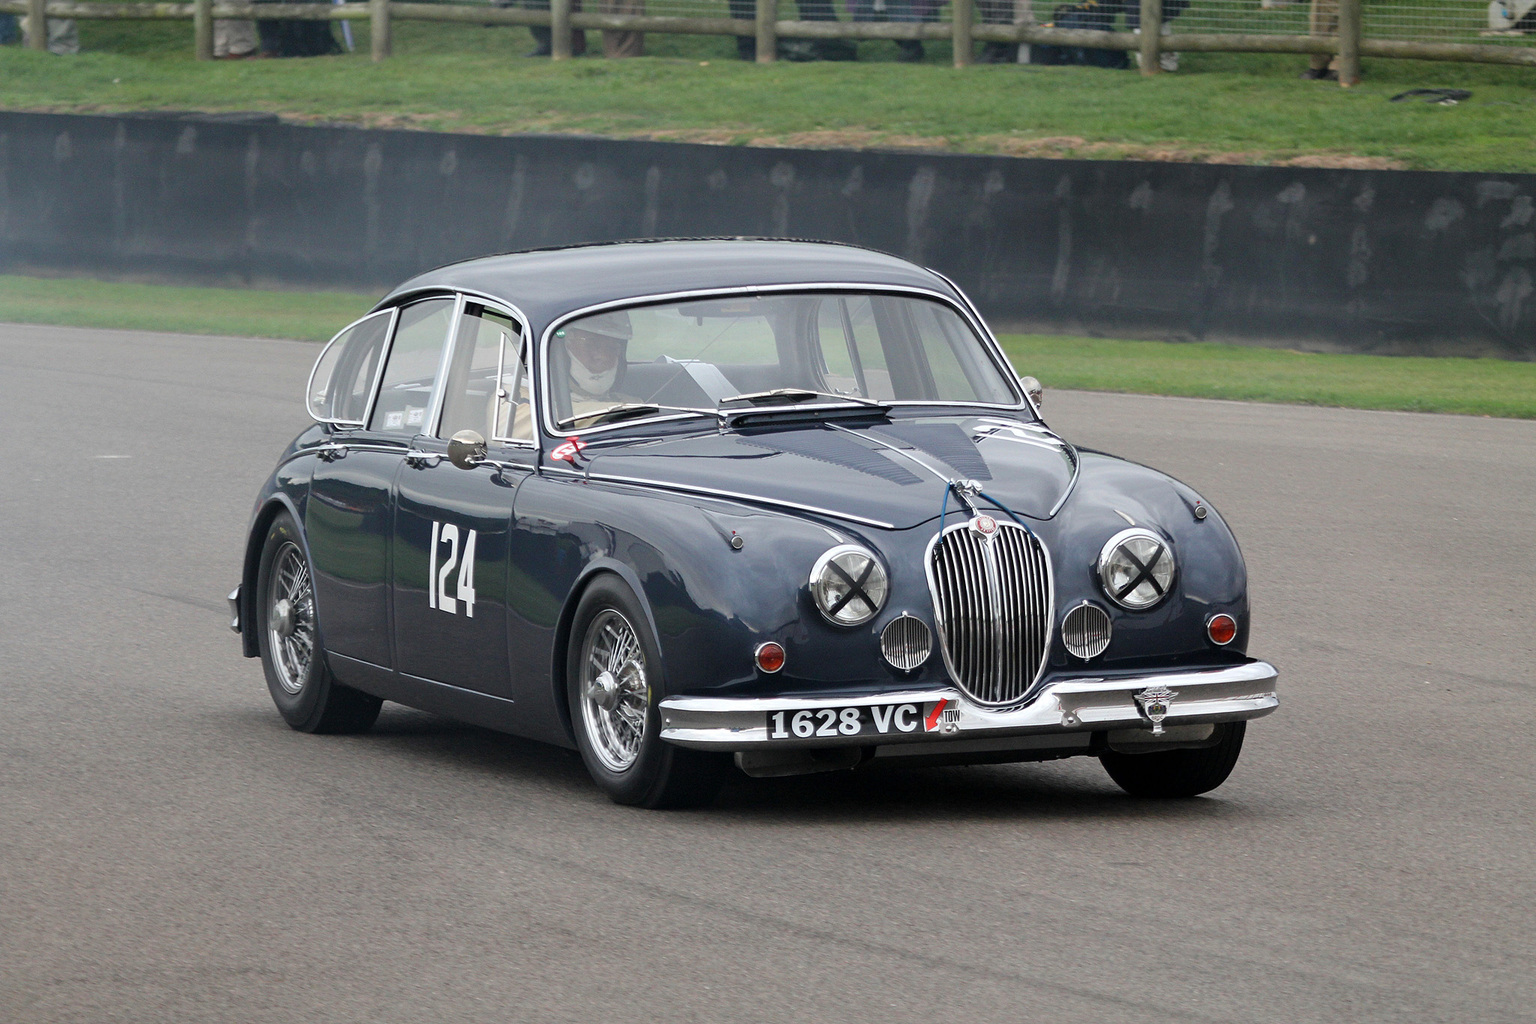 1959 Jaguar Mark 2